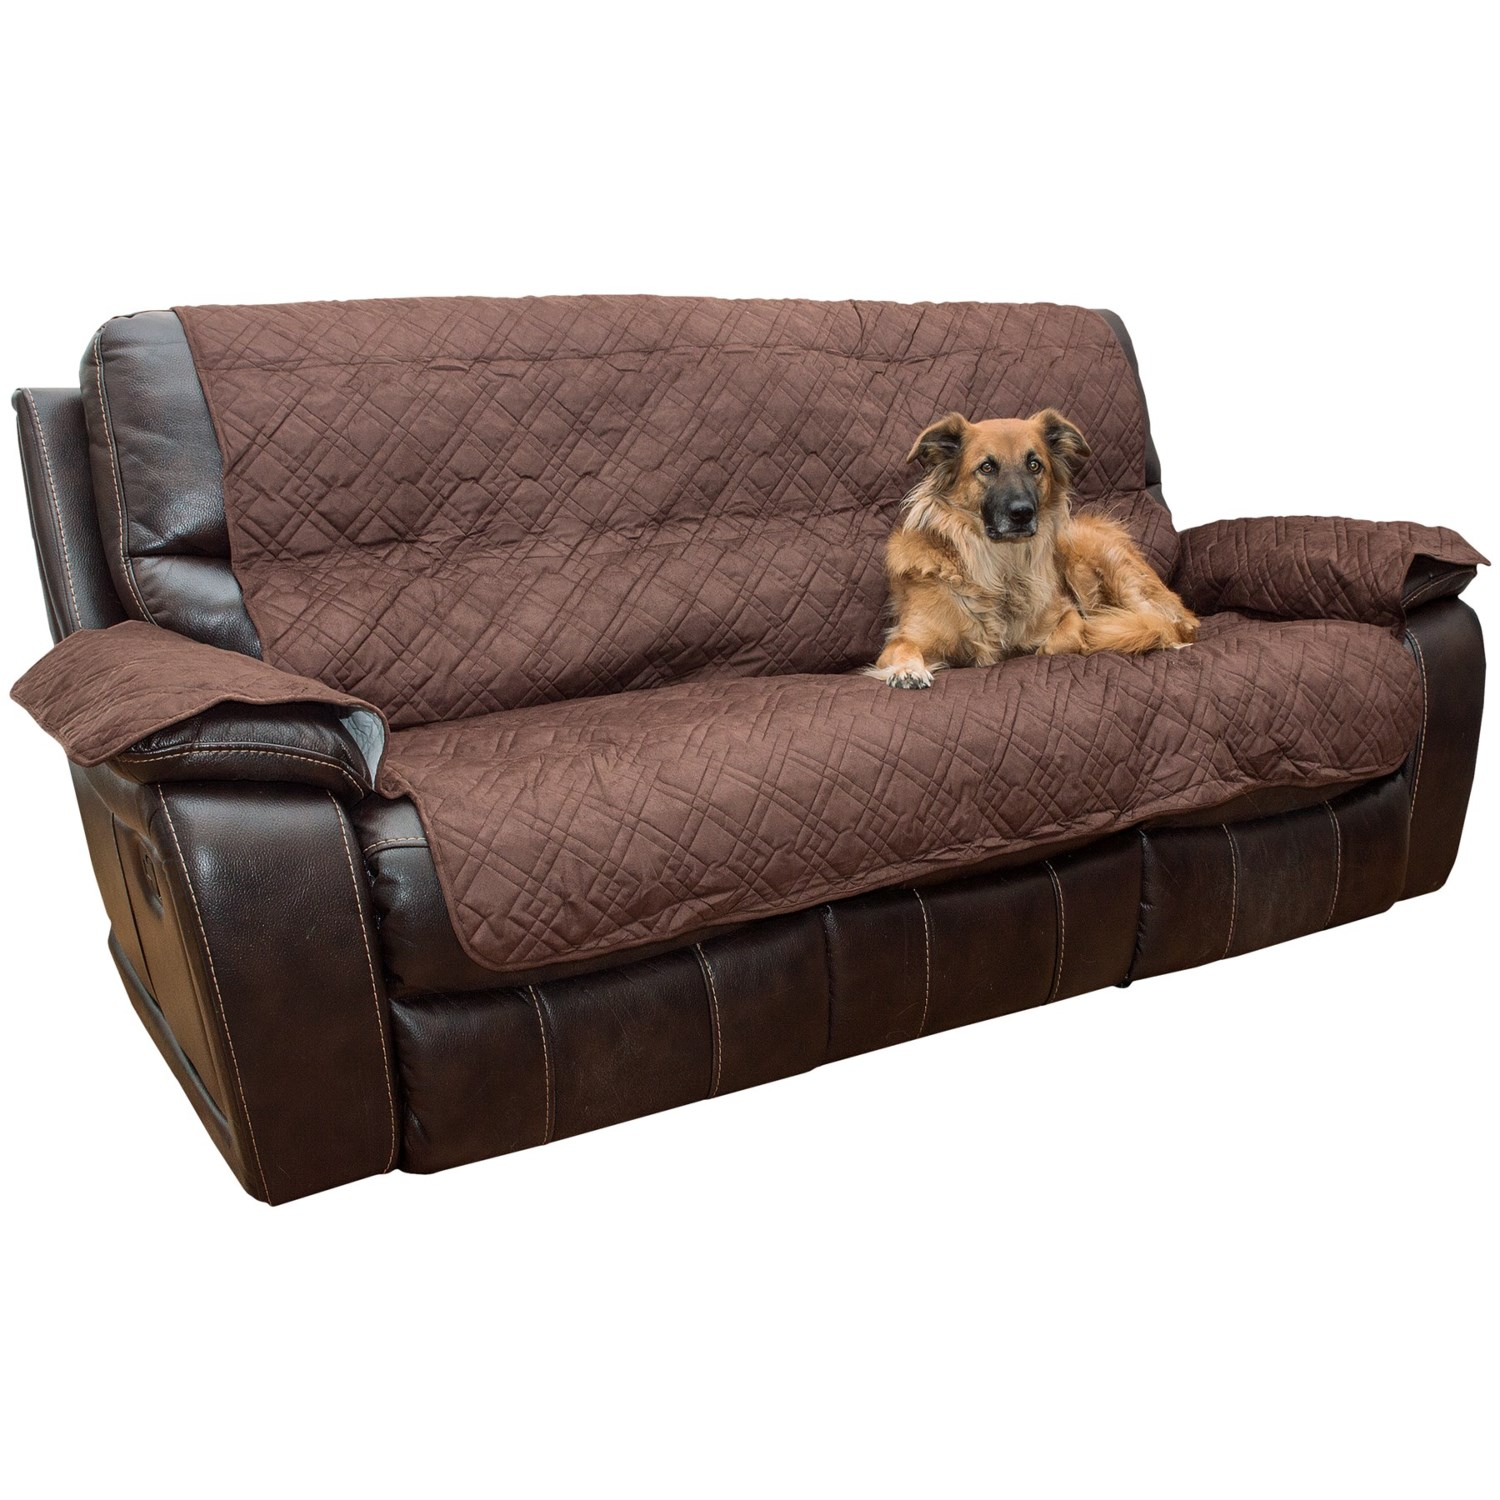 Yes Pets Quilted Microsuede Sofa Cover Microfiber Save 37%